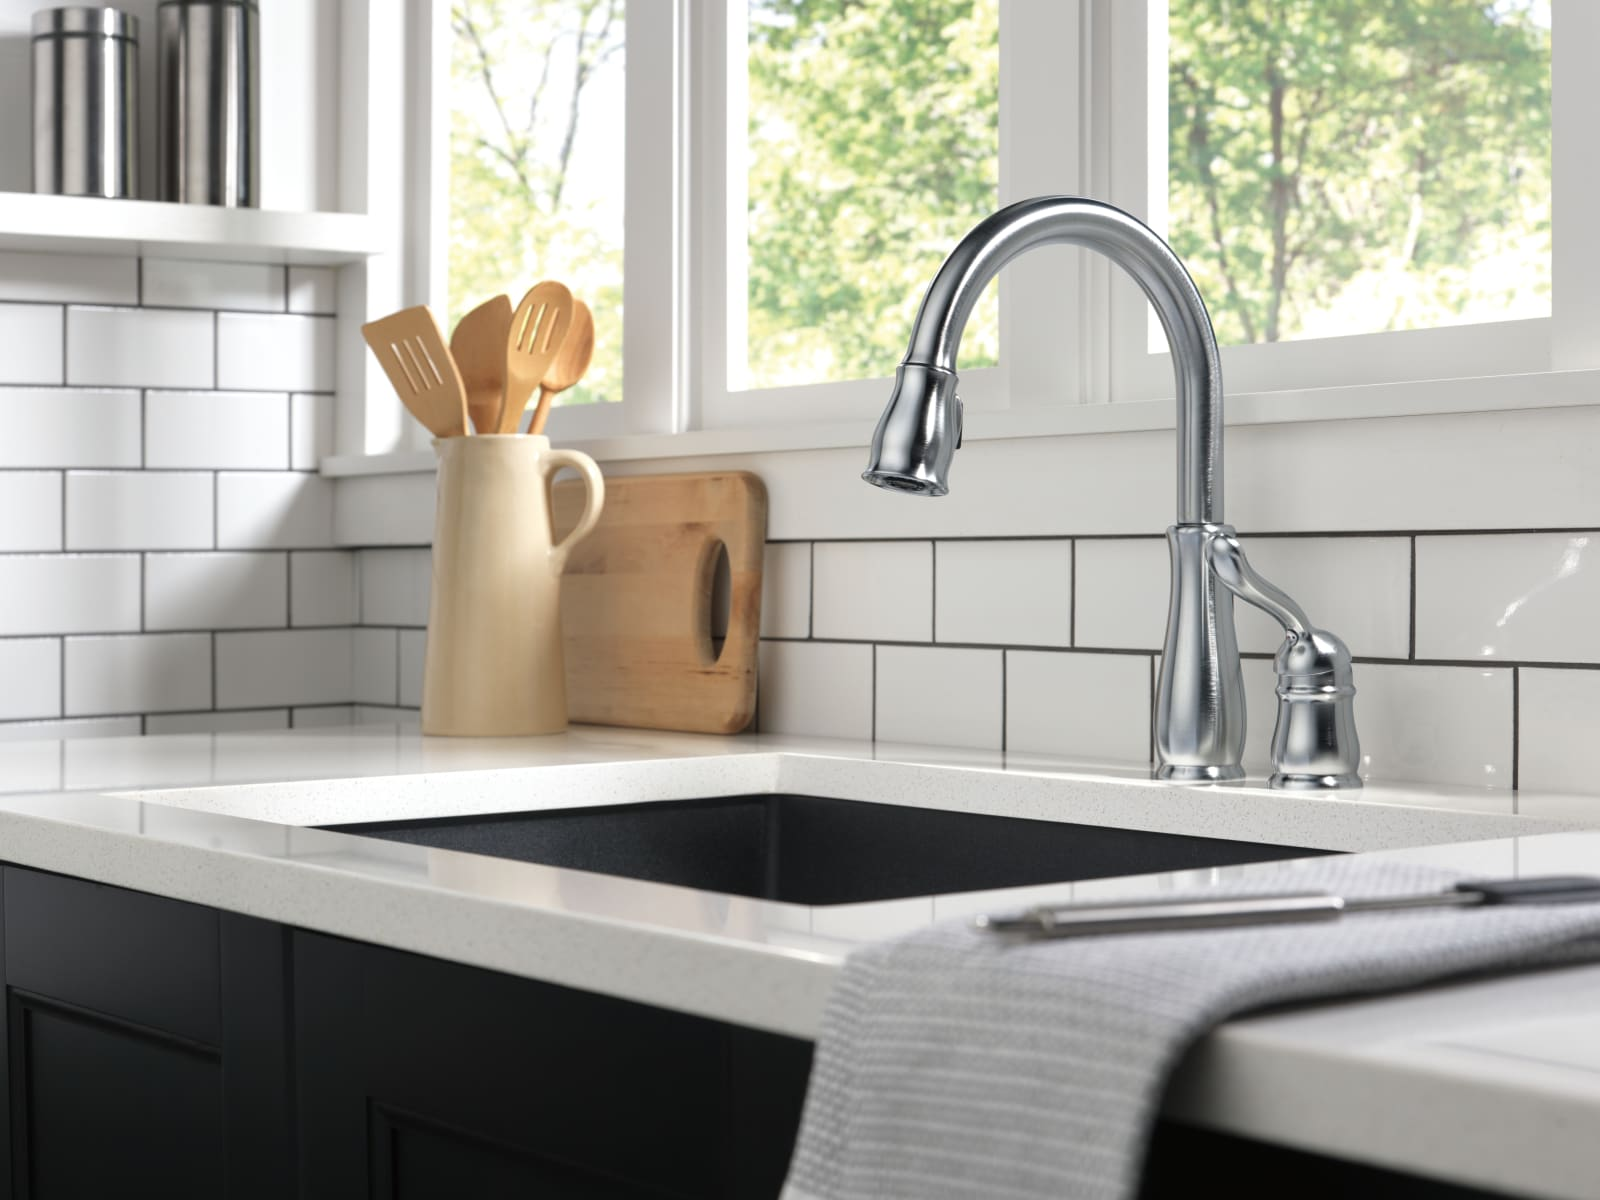 Delta 978 Rb Dst Venetian Bronze Leland Pull Down Kitchen Faucet With Magnetic Docking Spray Head Includes Lifetime Warranty Faucet Com